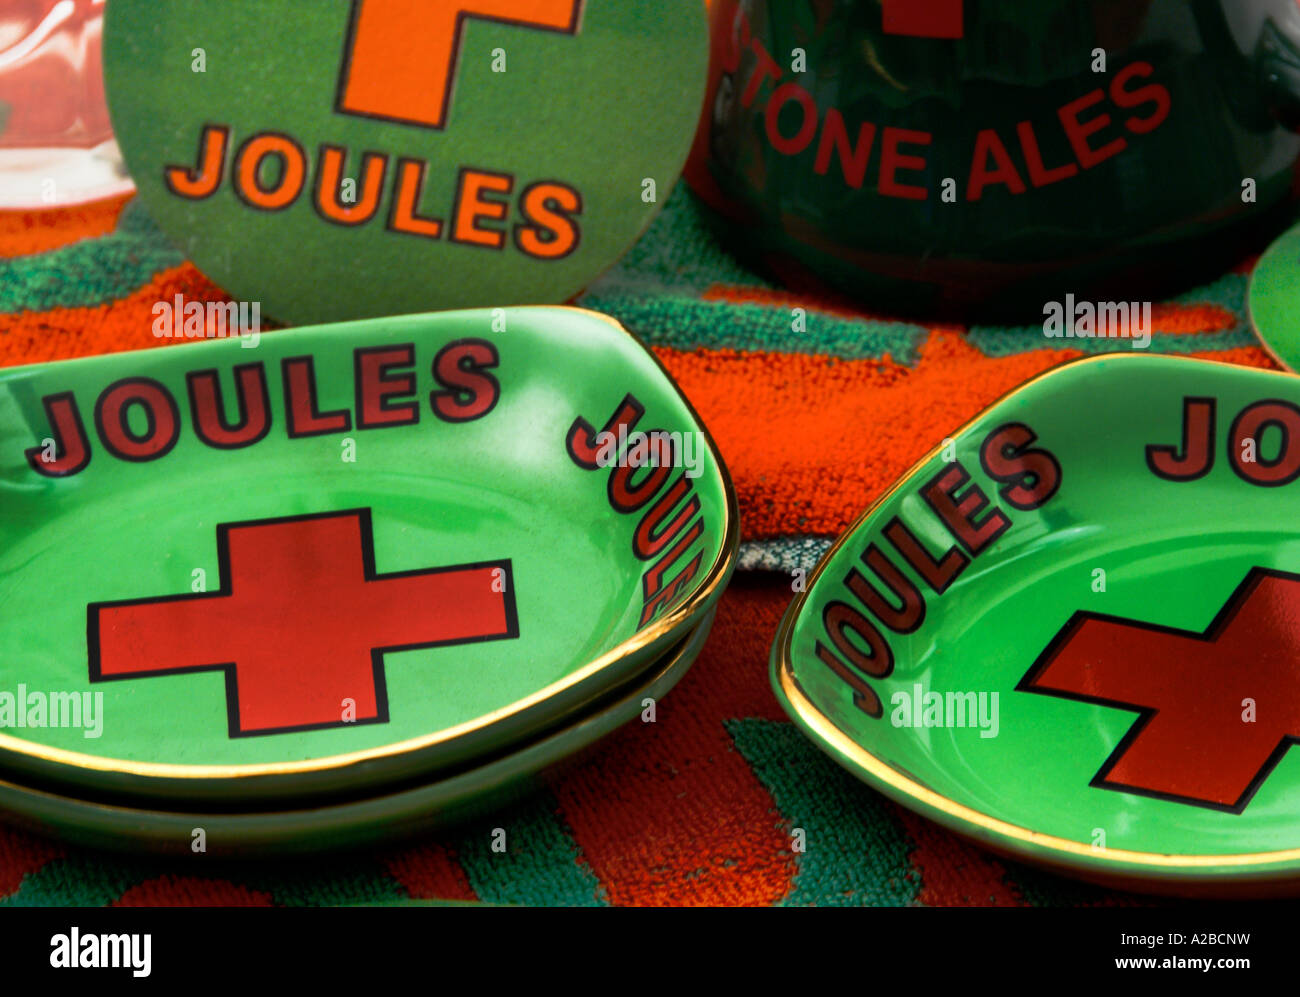 Joules of Stone Memorabilia for Editorial Use Only - Stock Image